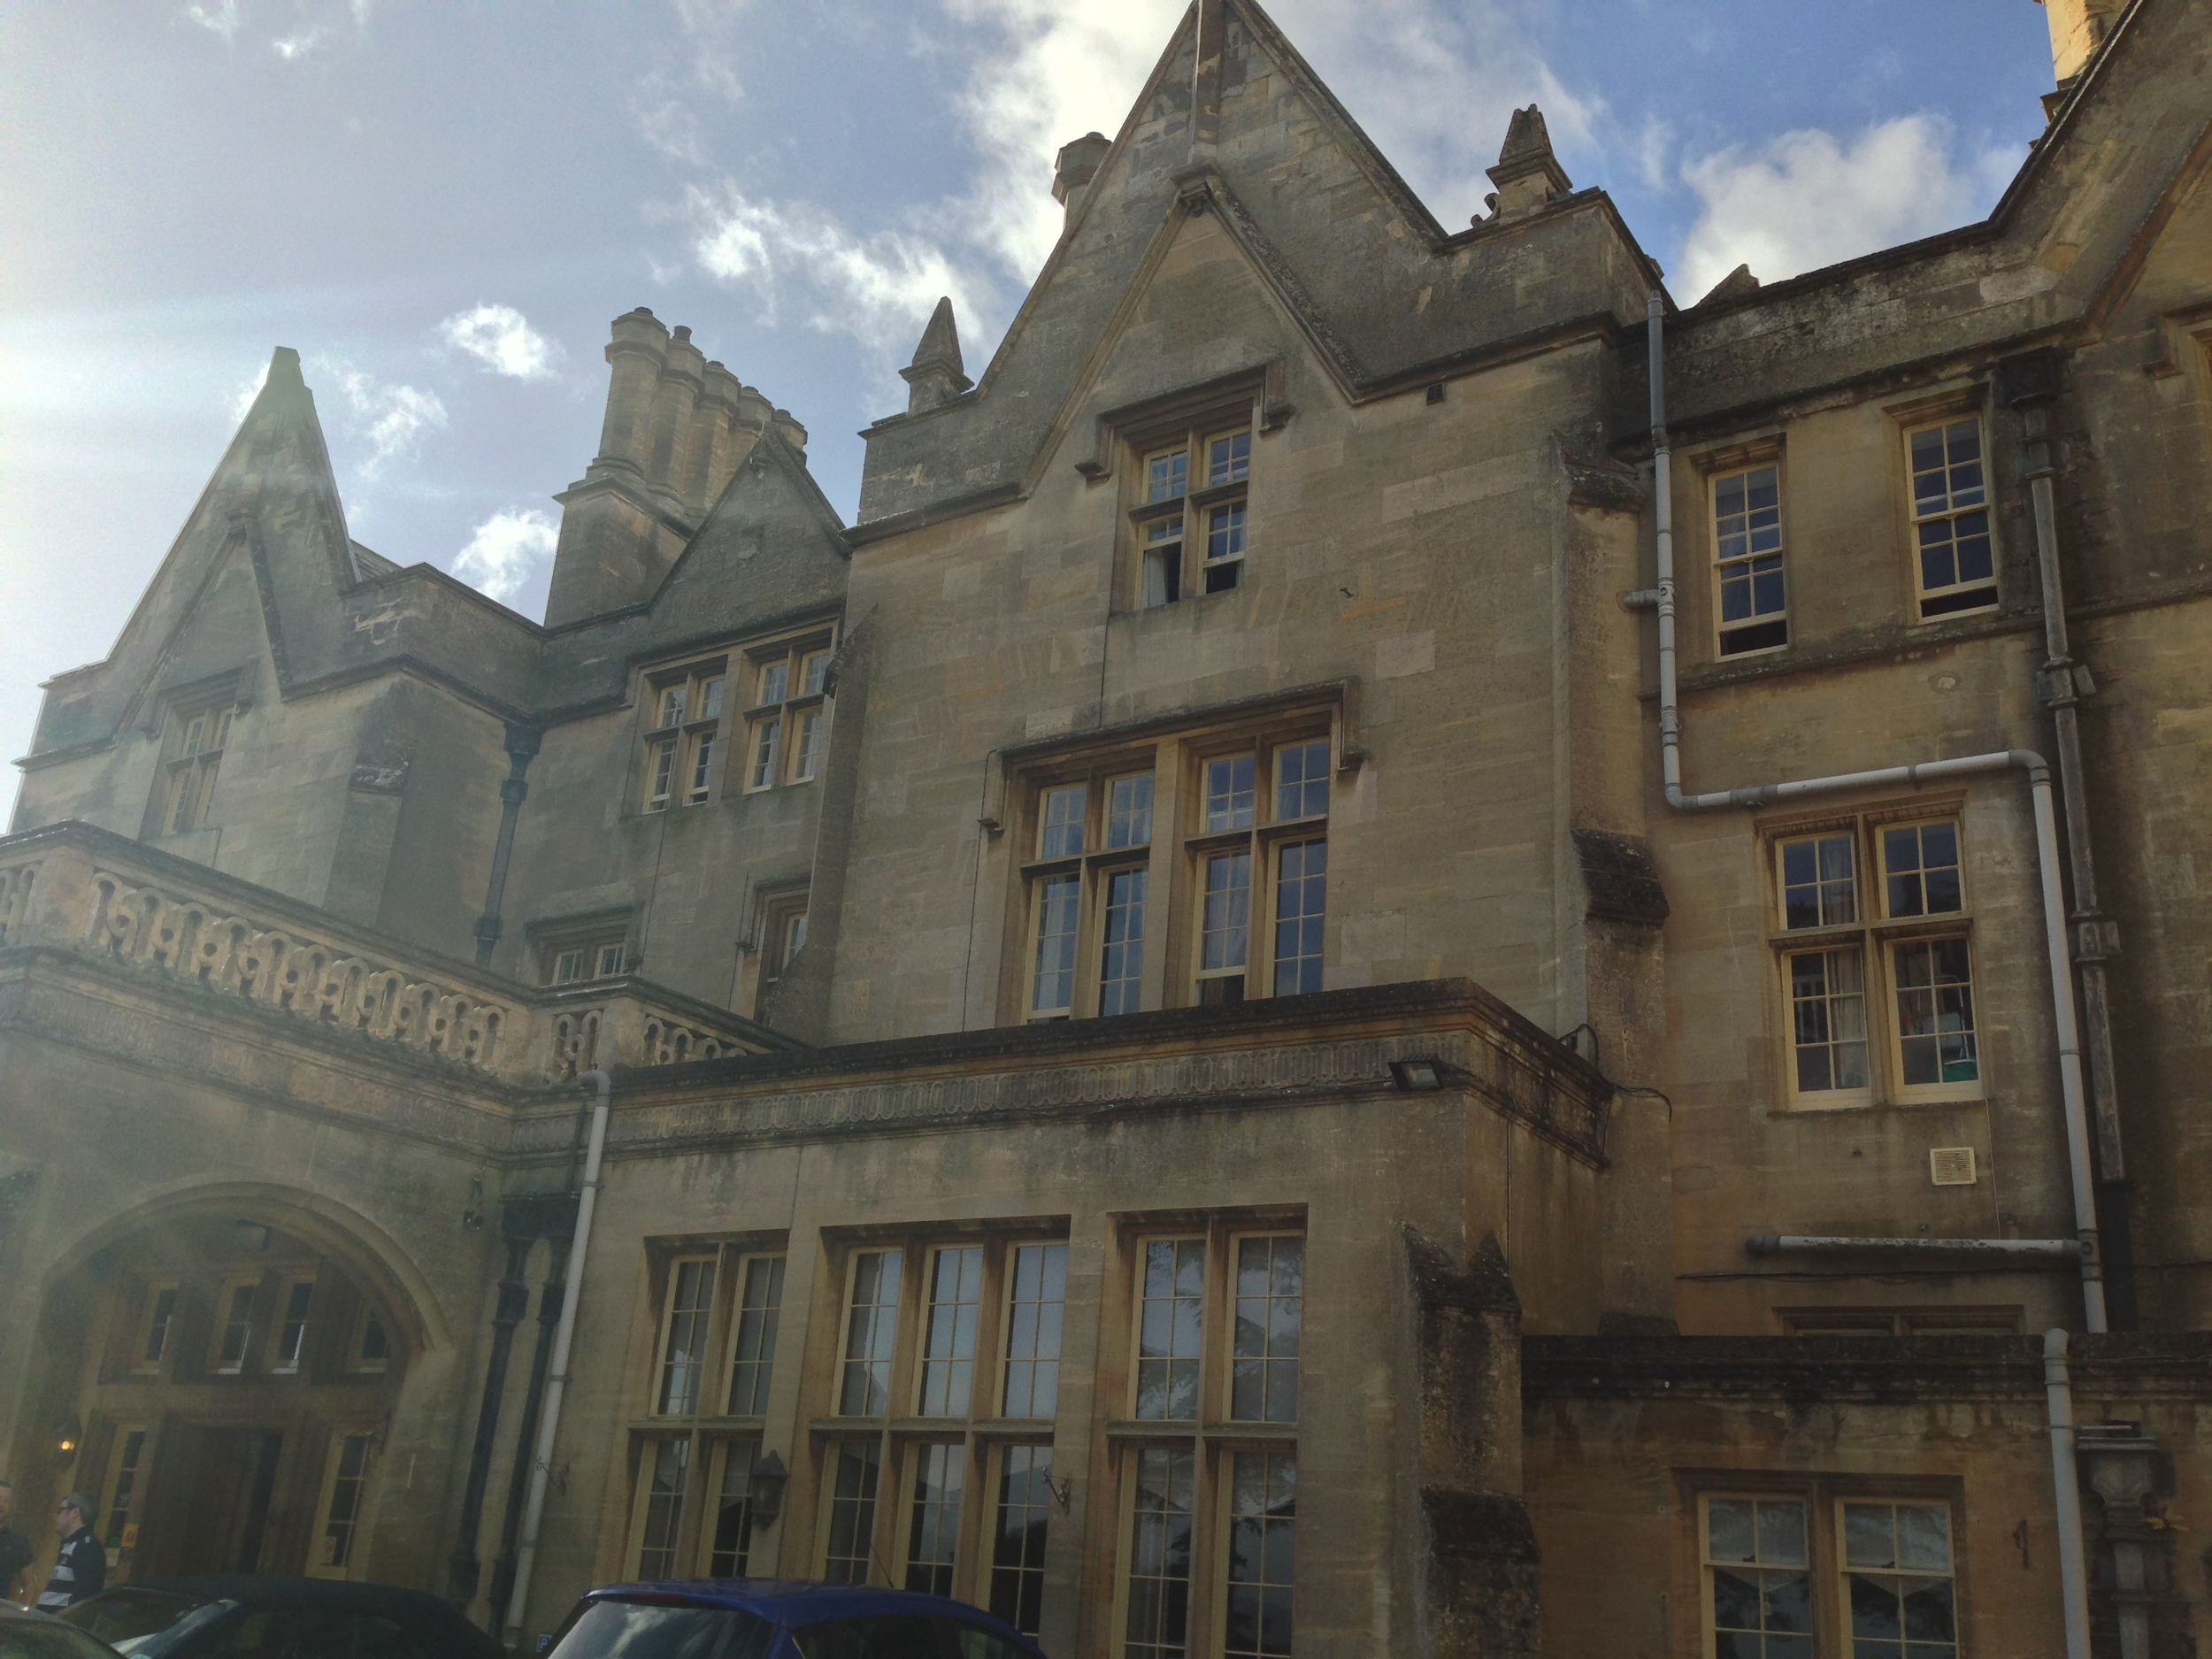 Dumbleton Hall - Gorgeous!